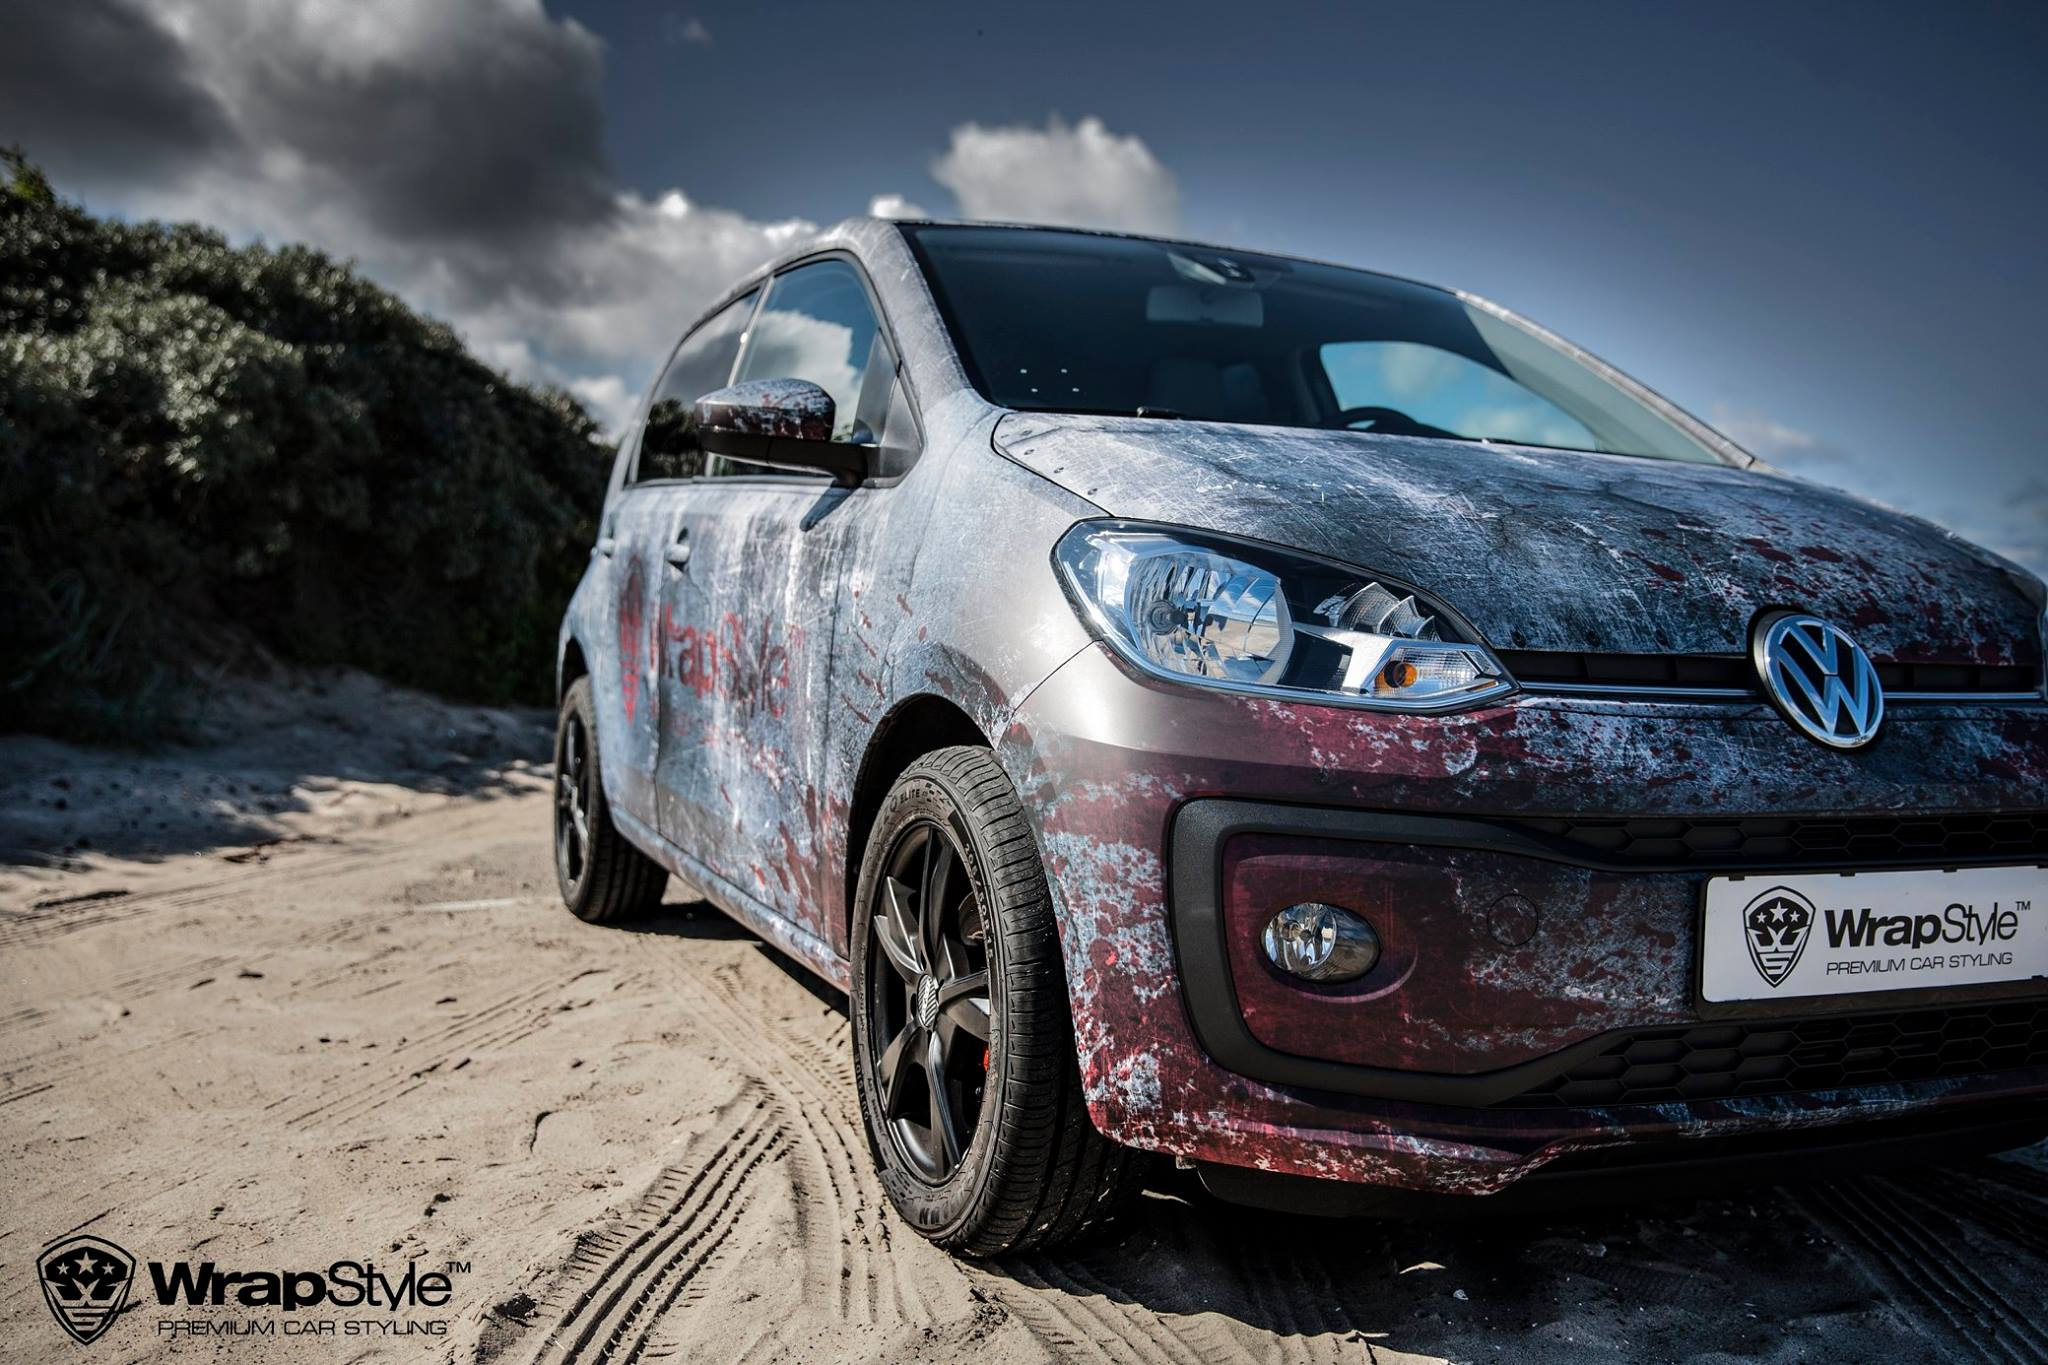 Vw Up Rust Wrap And Sexy Photo Shoot Are Confusing